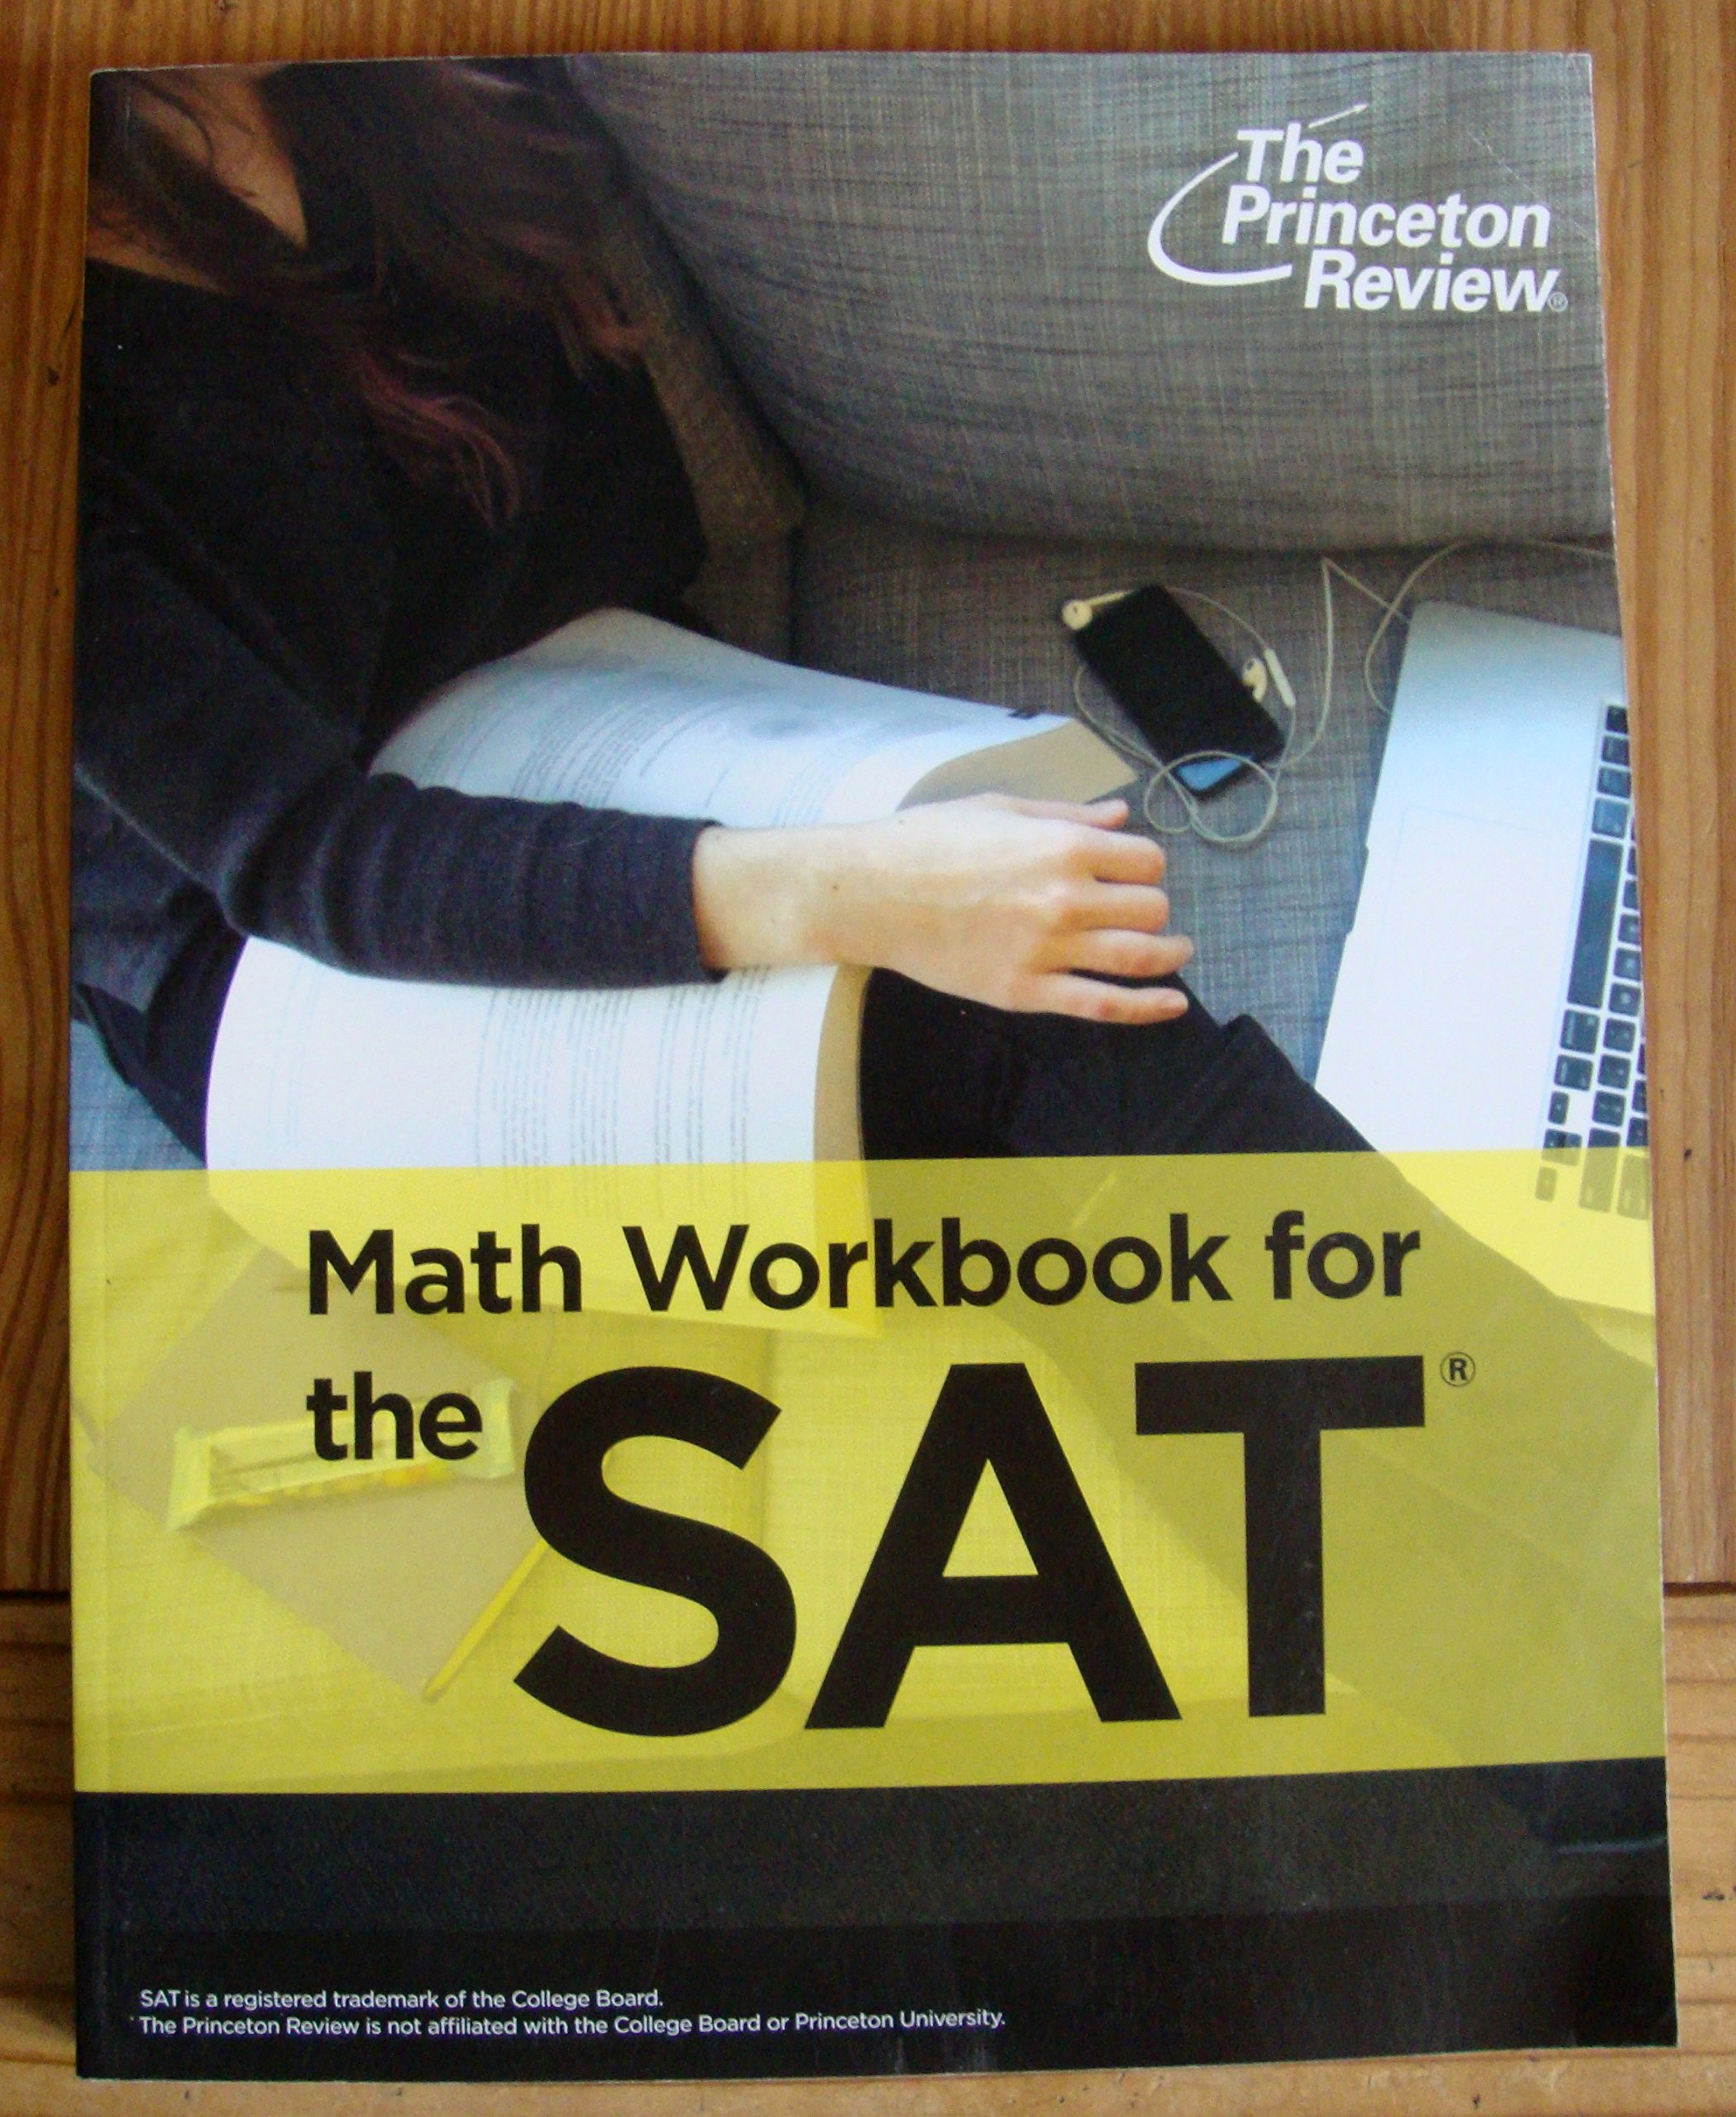 the princeton review math workbook for the sat amy minster aaron rh amazon com manual for the sat princeton review answers The Princeton Review Test Prep